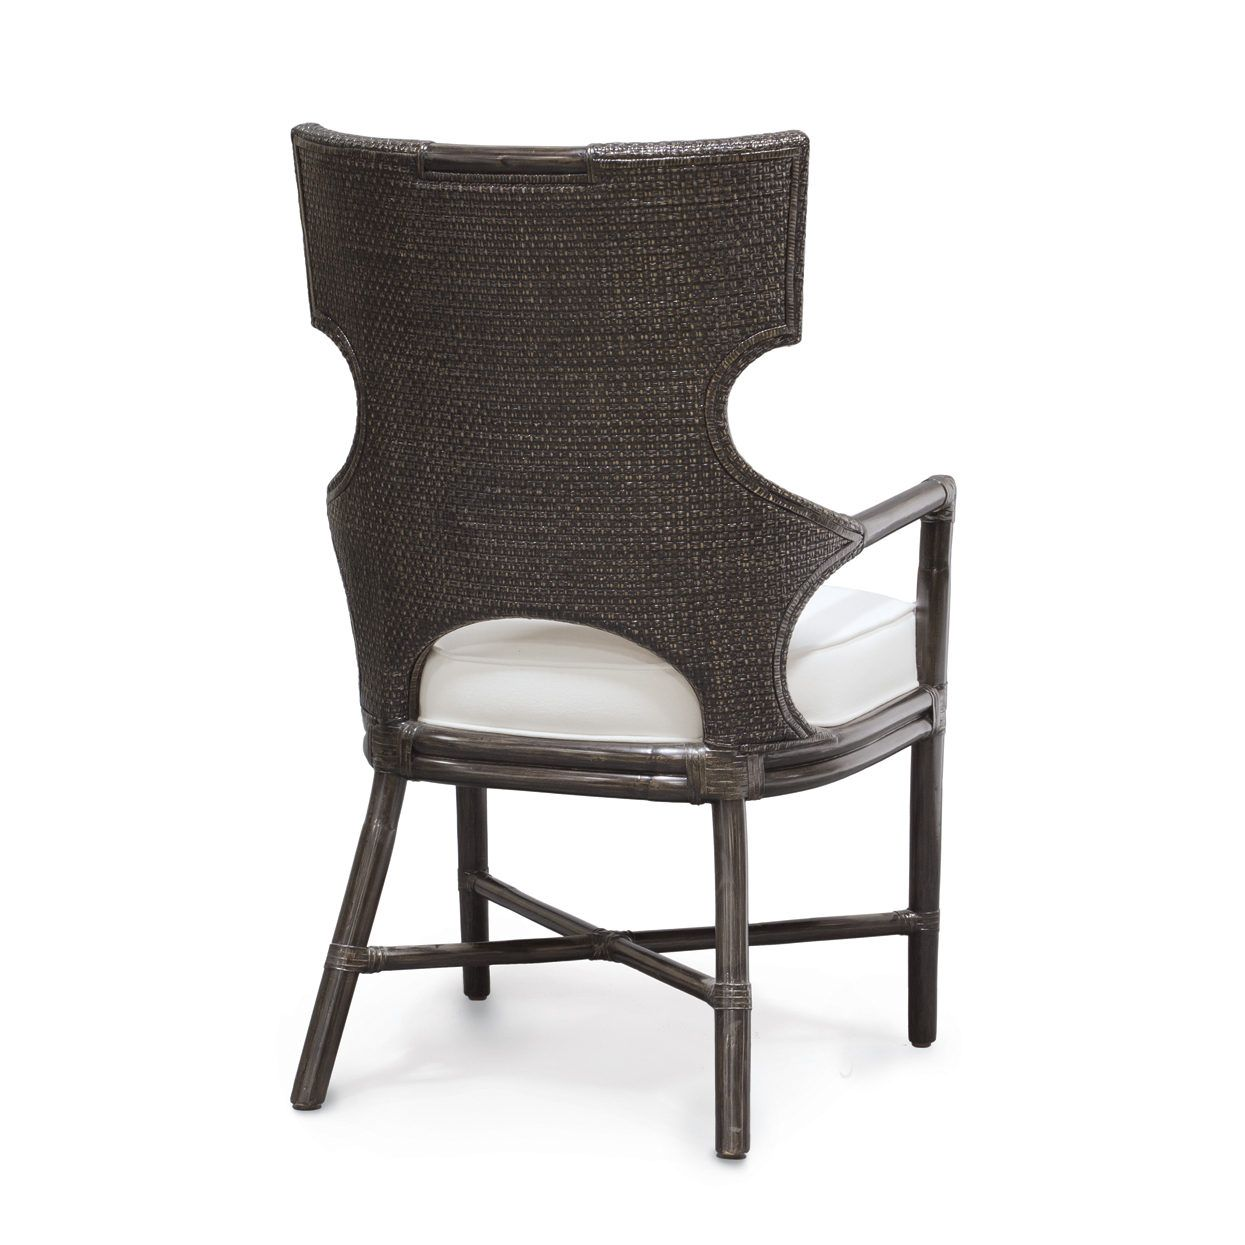 Option 2 Head Chair Back View Chair Armchair Outdoor Chairs